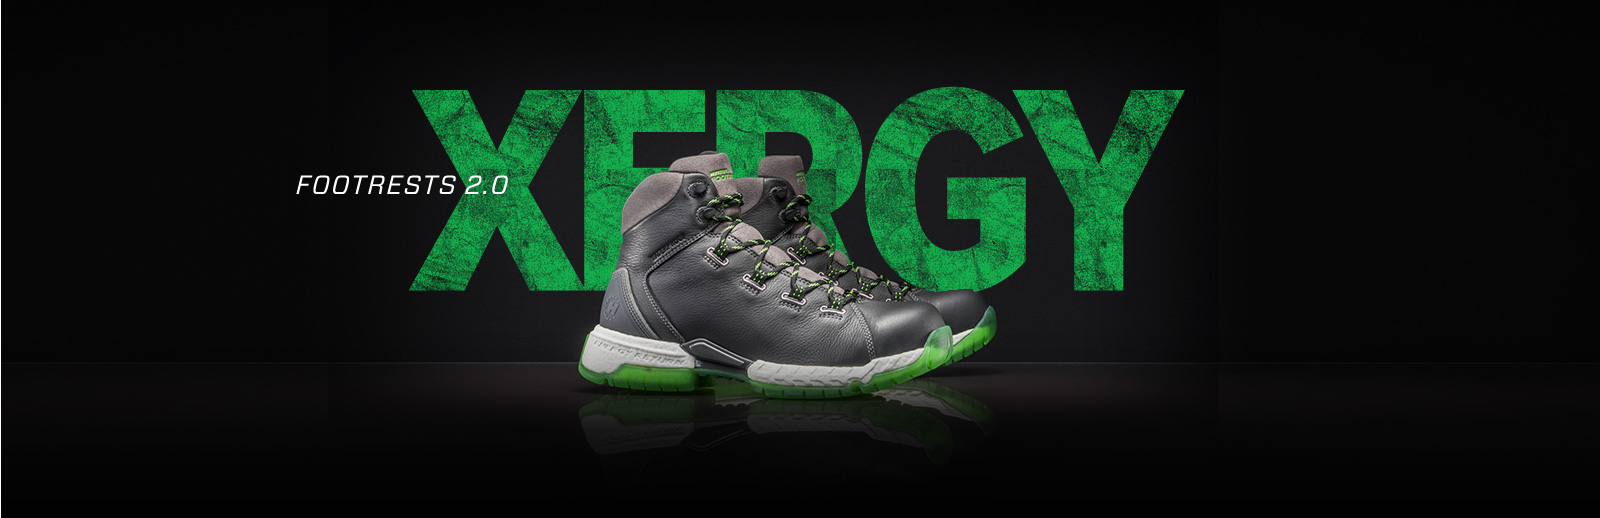 Footrests 2.0 Xergy shoes